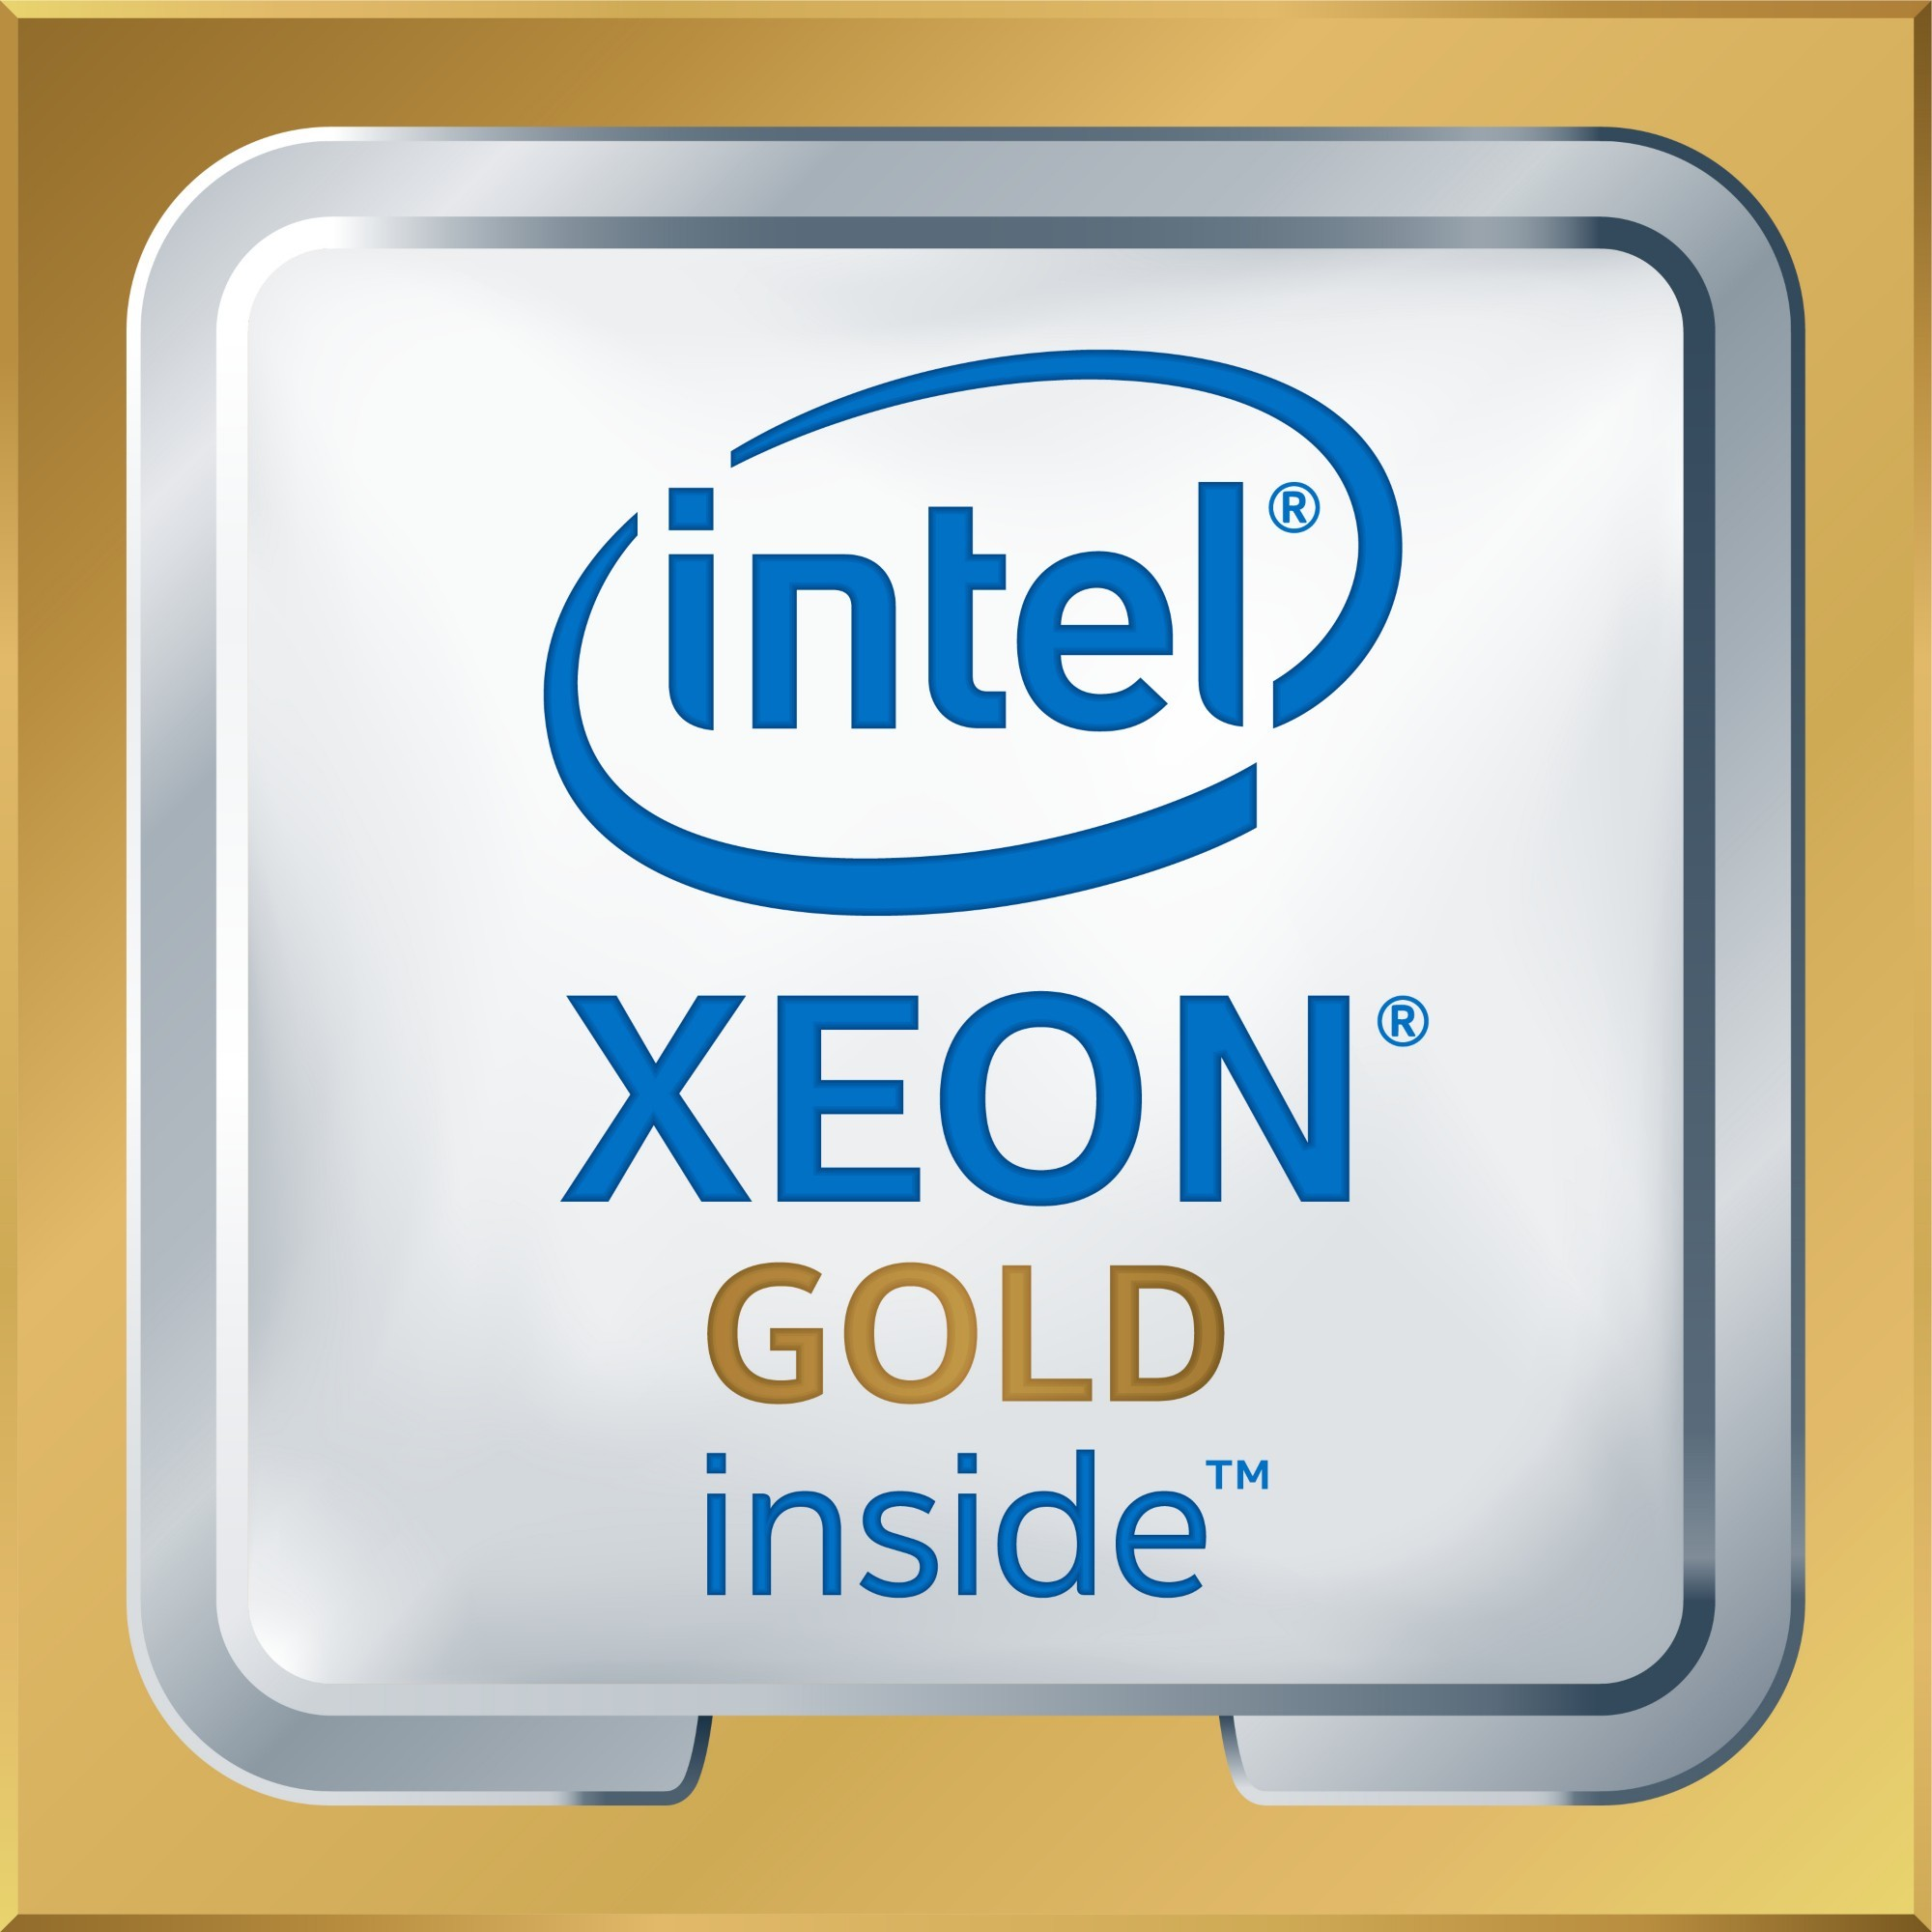 INTEL CD8067303536100 XEON GOLD 5118 PROCESSOR (16.5M CACHE, 2.30 GHZ) 2.30GHZ 16.5MB L3